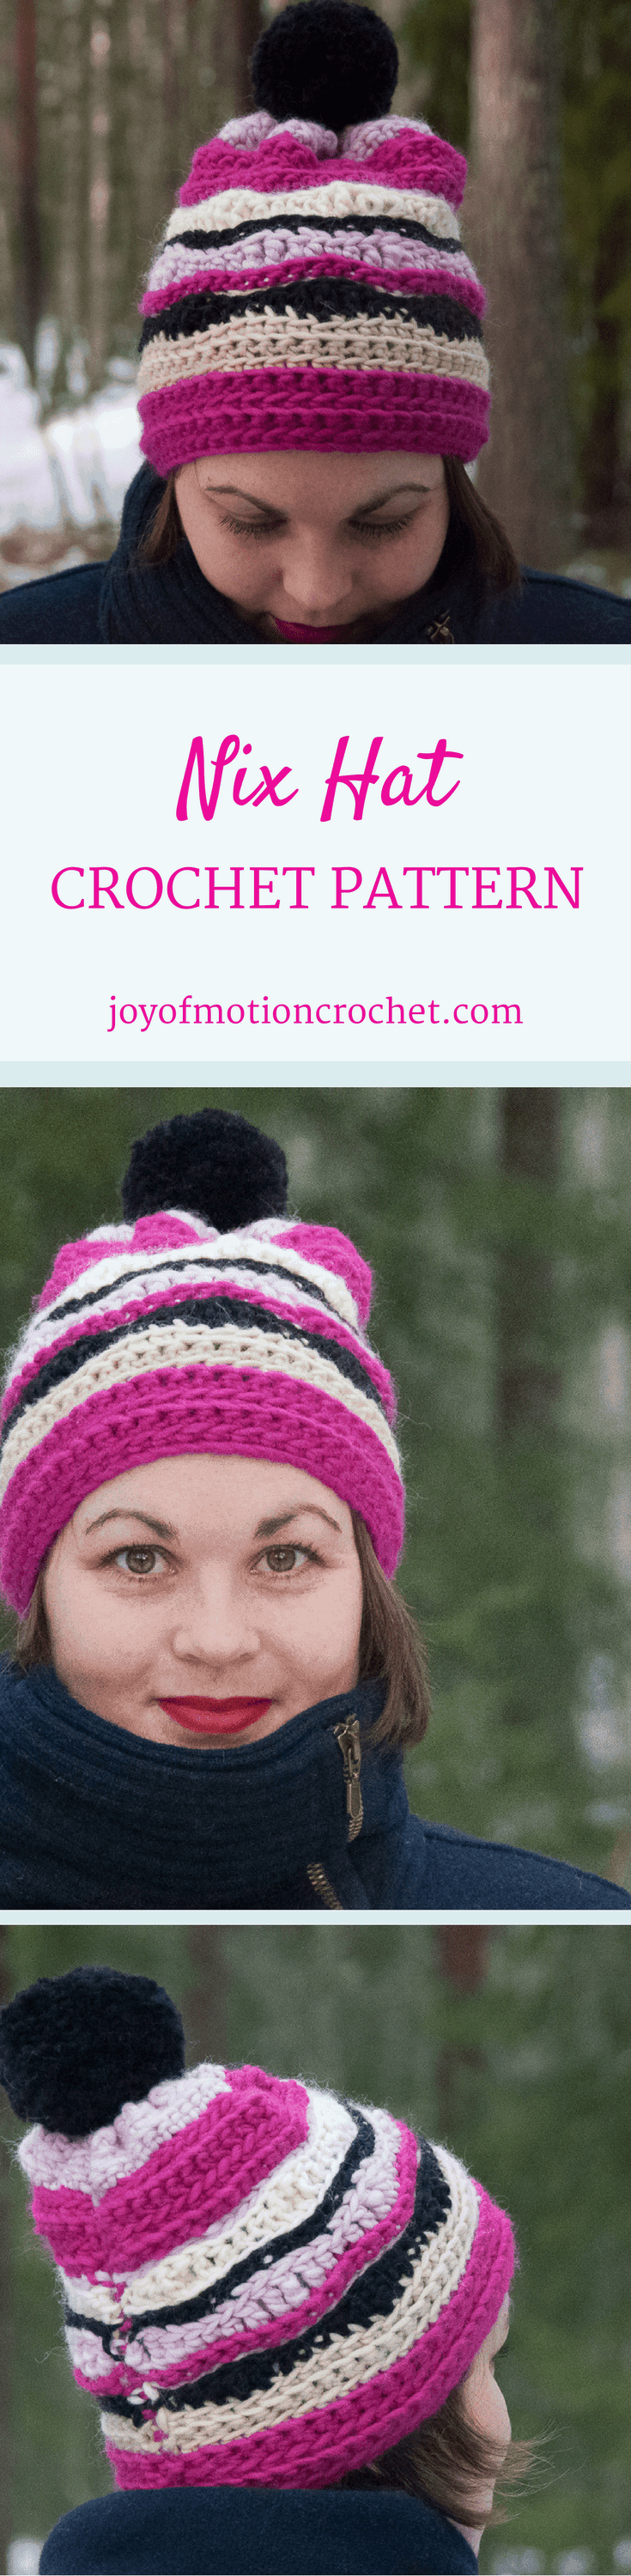 The Nix hat. Crochet pattern for a warm winter hat. This beanie pattern has a huge size range from 12 months to adult size| Hat crochet patterns. Crochet pattern hats. Beanie crochet patterns. Hood crochet pattern. Hat crochet designs. Slouchy hat patterns. Slouchy beanie crochet patterns. Animal crochet pattern hats. Women's crochet pattern hat. Baby crochet pattern beanie. Beanie crochet pattern children's. Click link to learn more.